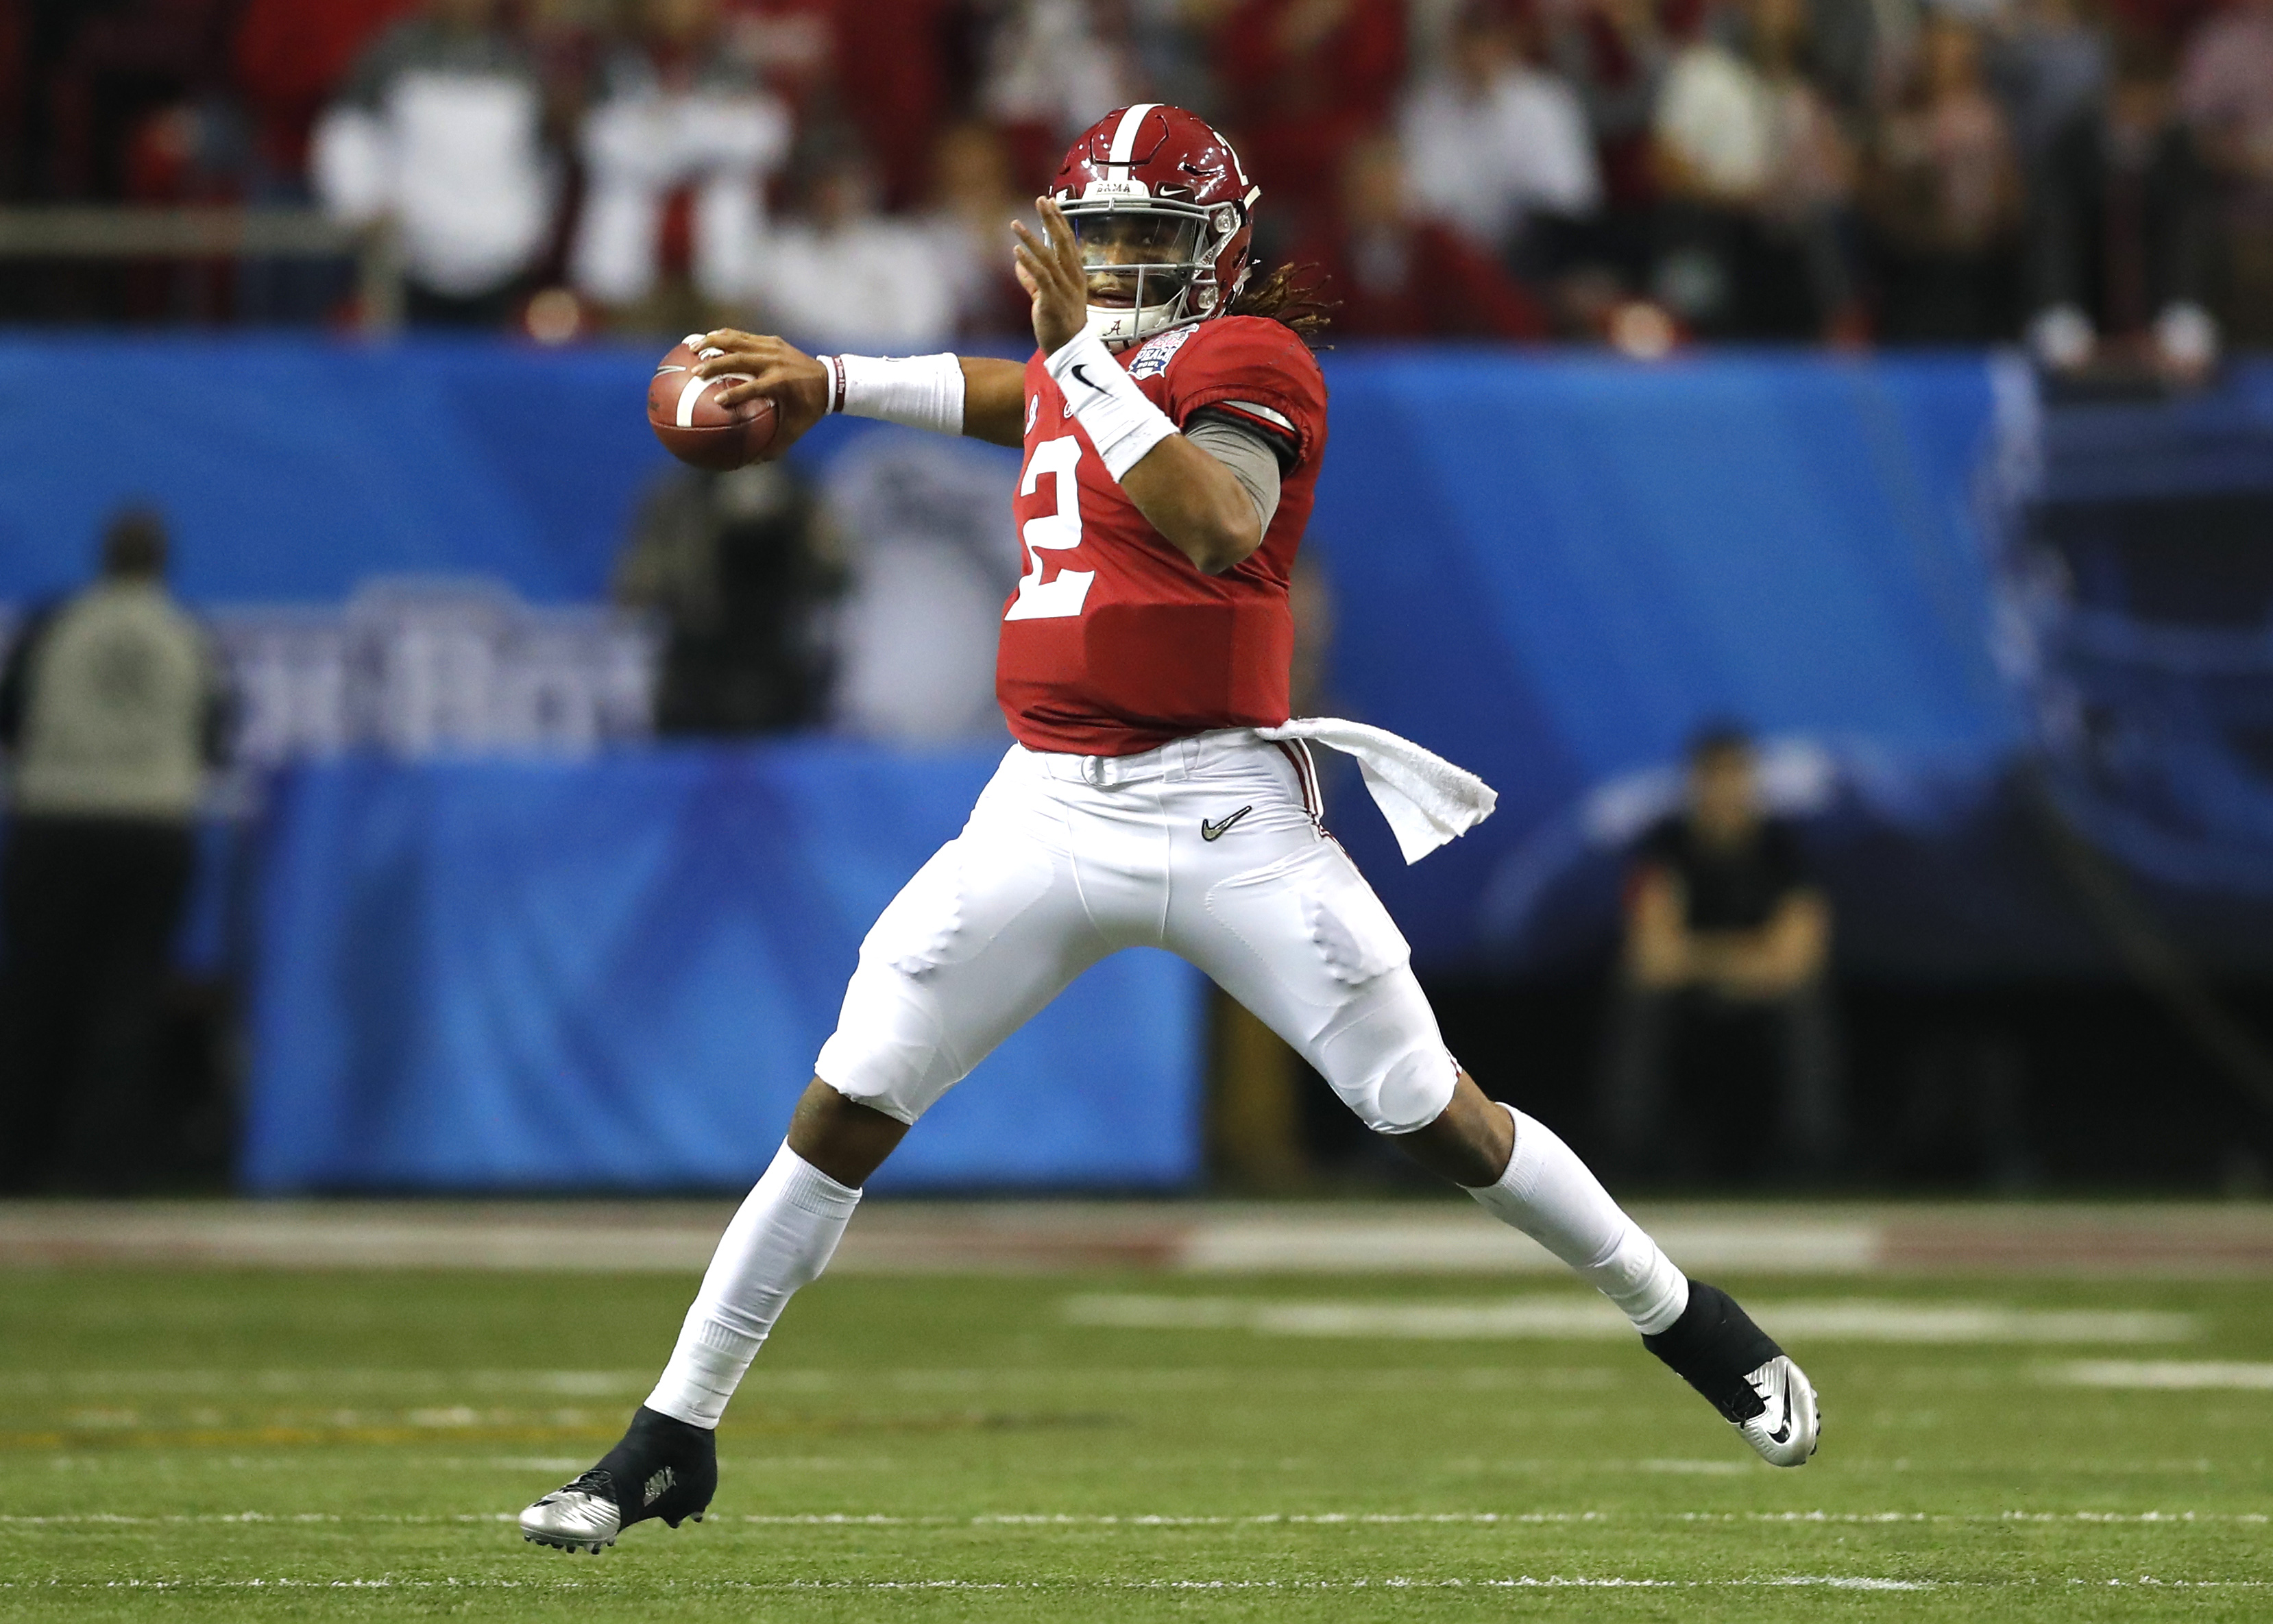 Alabama Crimson Tide quarterback Jalen Hurts (2) rolls out to pass during first half action of the Chick-Fil-A Peach Bowl football game between the Alabama Crimson Tide and Washington Huskies on December 31, 2016, at Georgia Dome in Atlanta, GA.